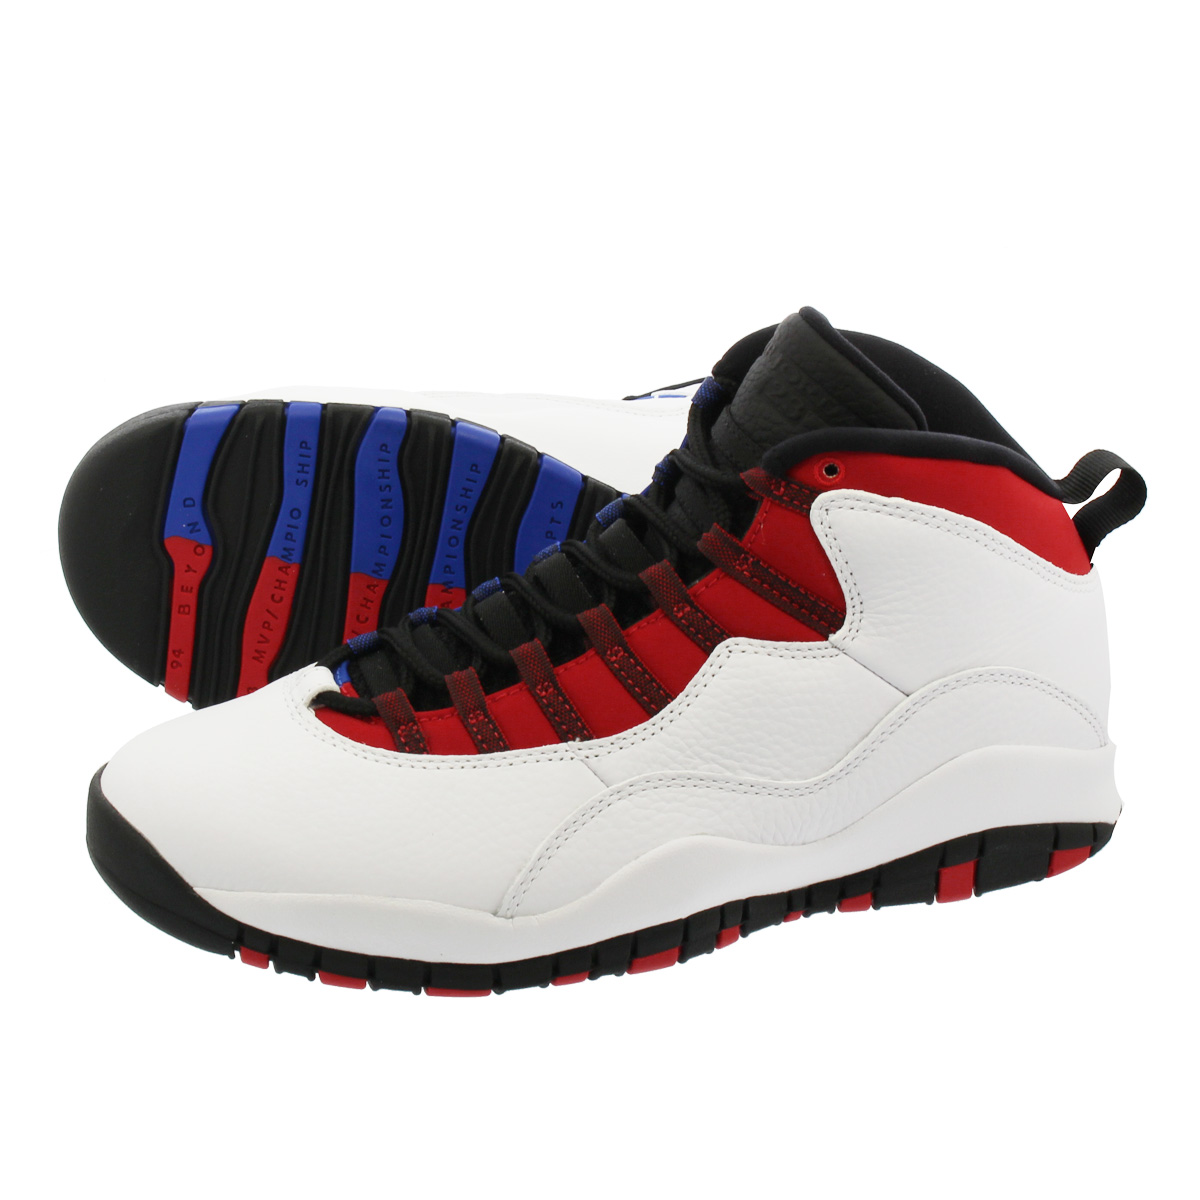 9e62903118da01 NIKE AIR JORDAN 10 RETRO Nike Air Jordan 10 nostalgic WHITE BLACK UNIVERSITY  RED HYPER ROYAL 310